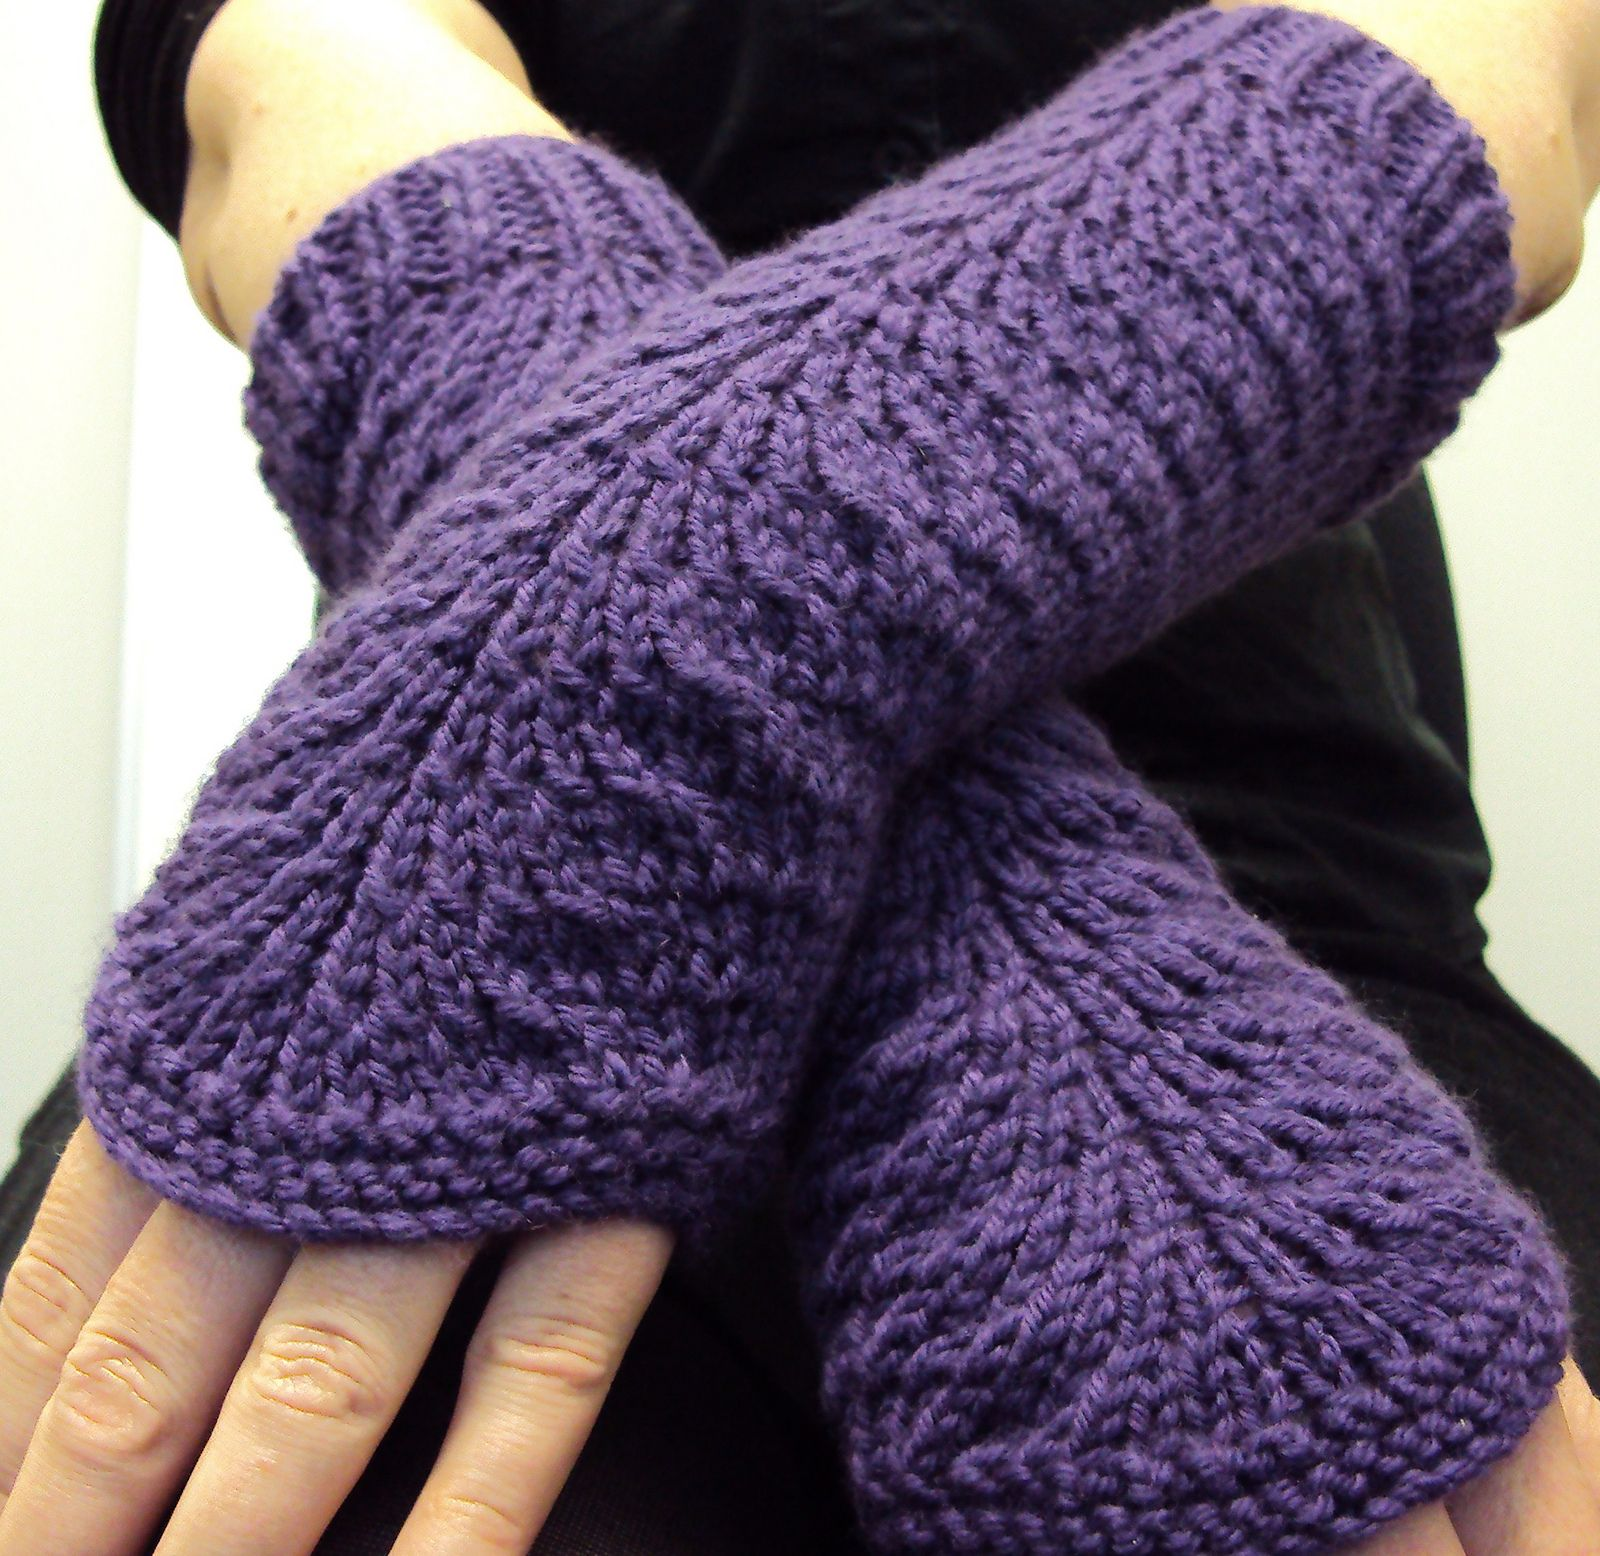 Free Knitting Pattern for Easy Lana Gloves - These lace fingerless ...